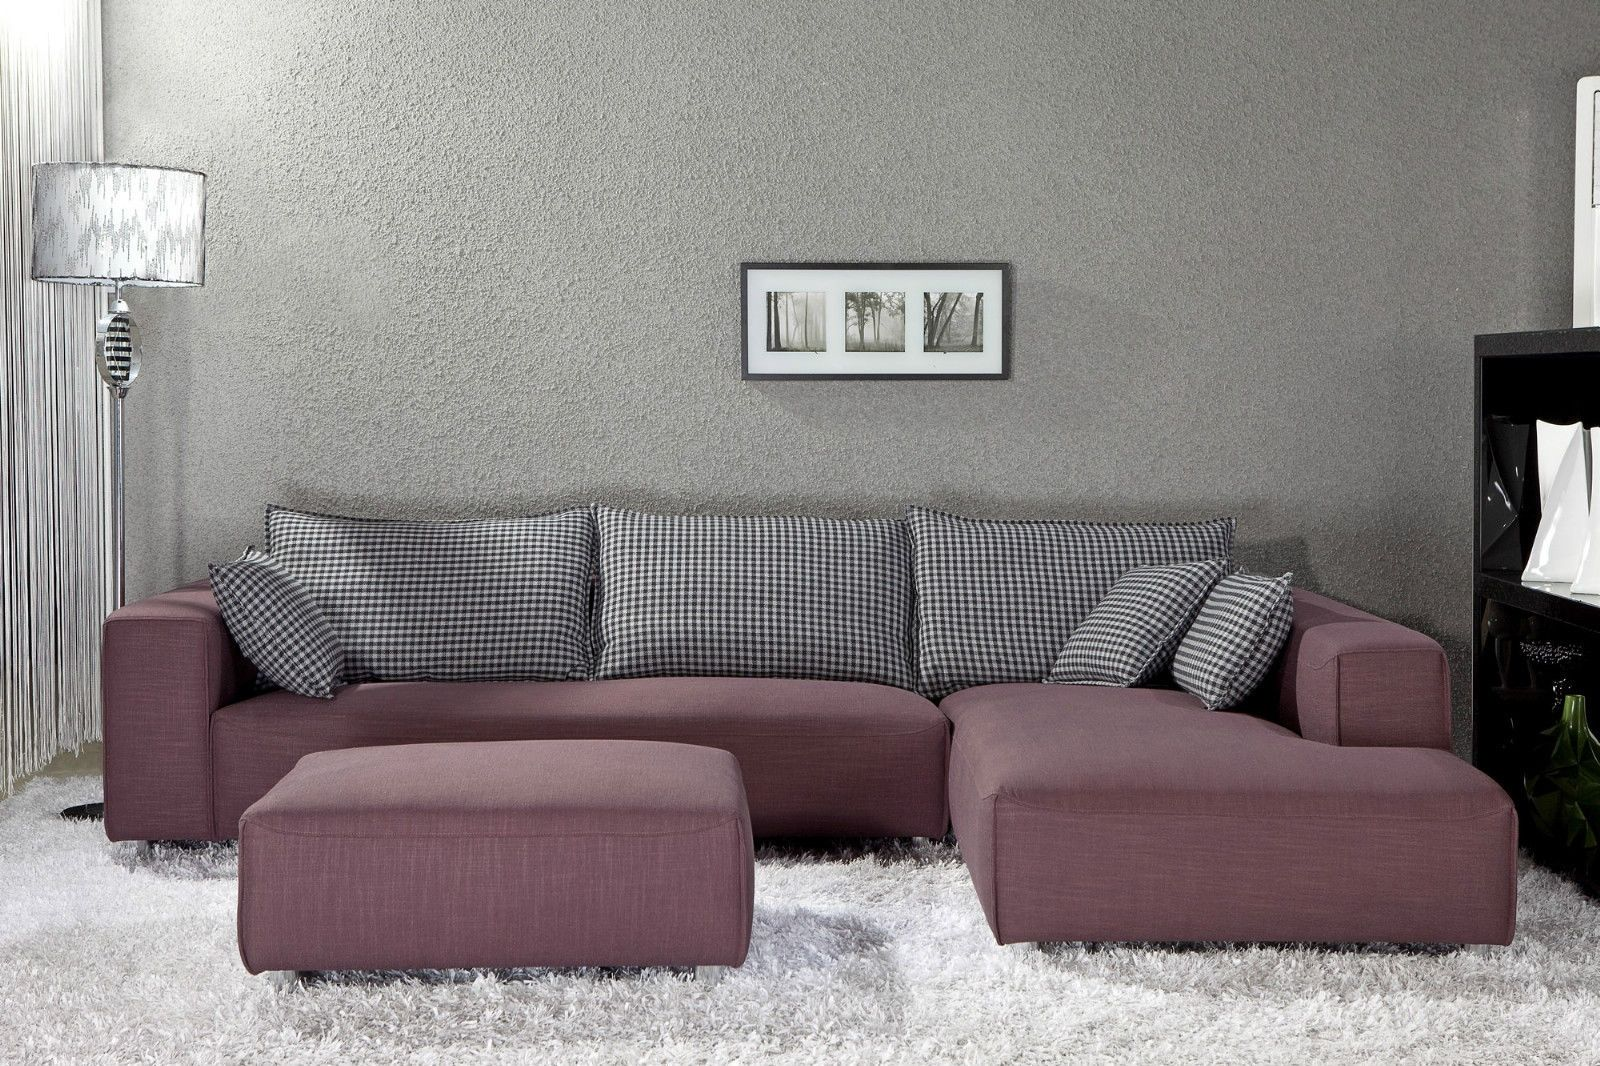 cool 7 seat sectional sofa decoration-Latest 7 Seat Sectional sofa Image